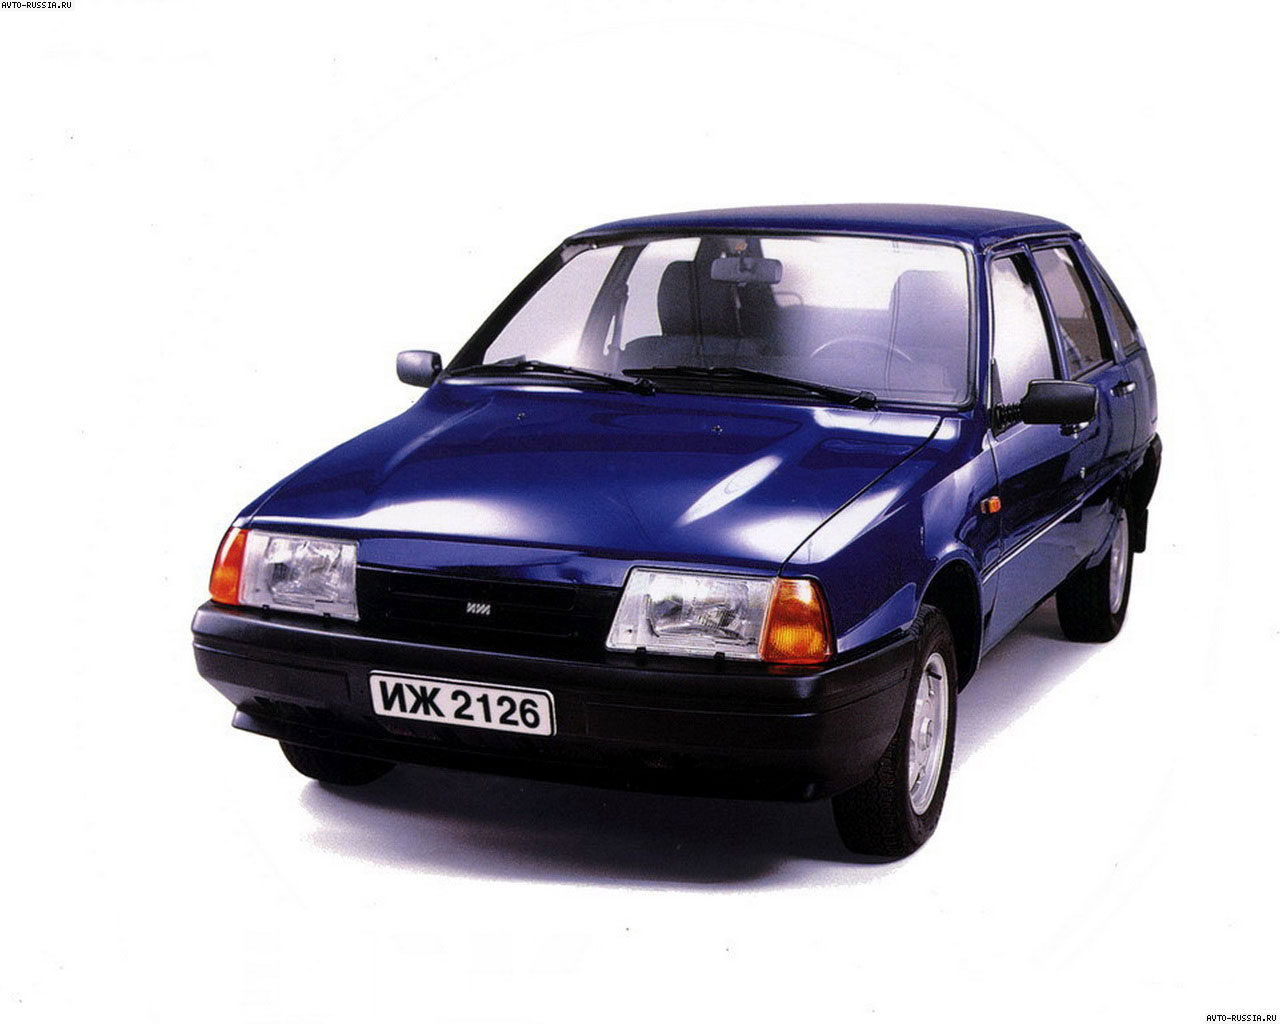 ... IZH 2126 Oda 5 Door Hatchback 1992 ...